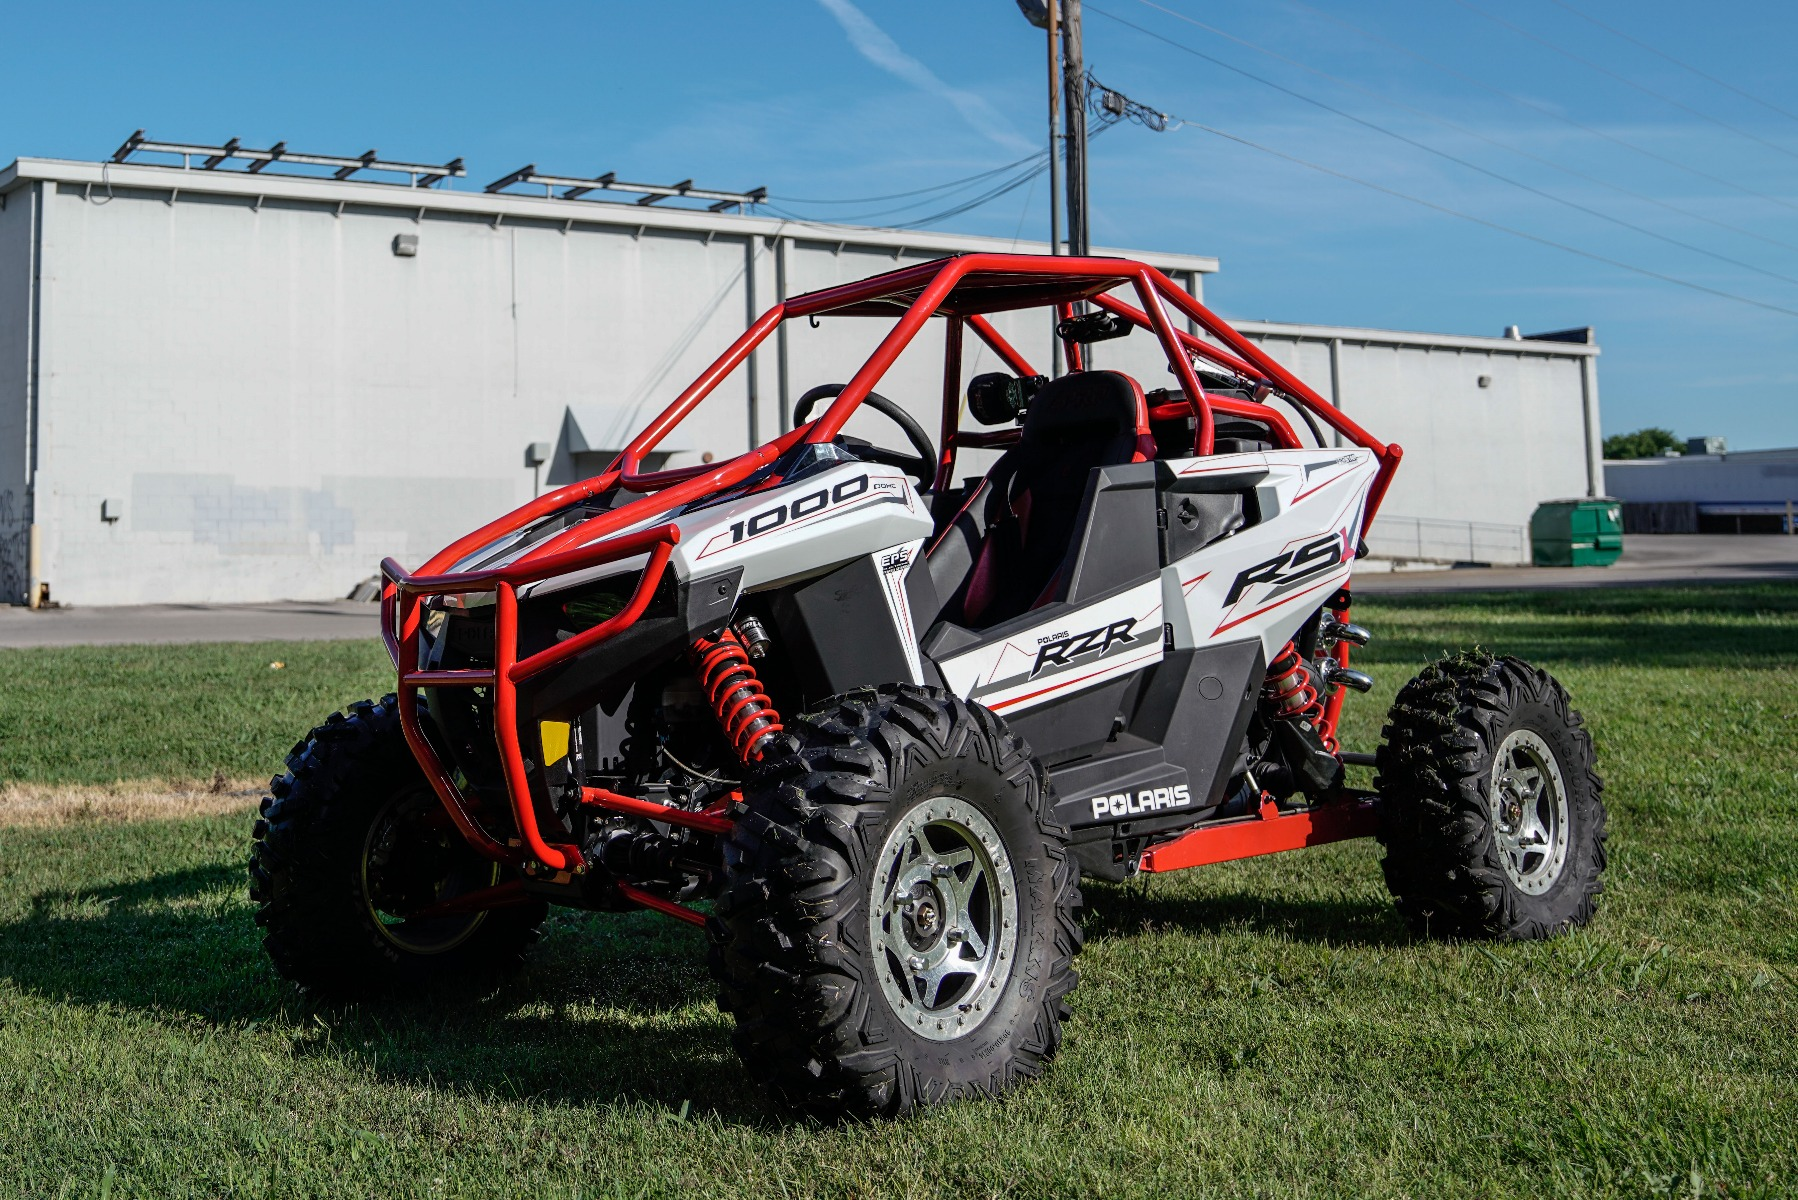 Polaris RZR RS1 Roll Cage in grass Image 14